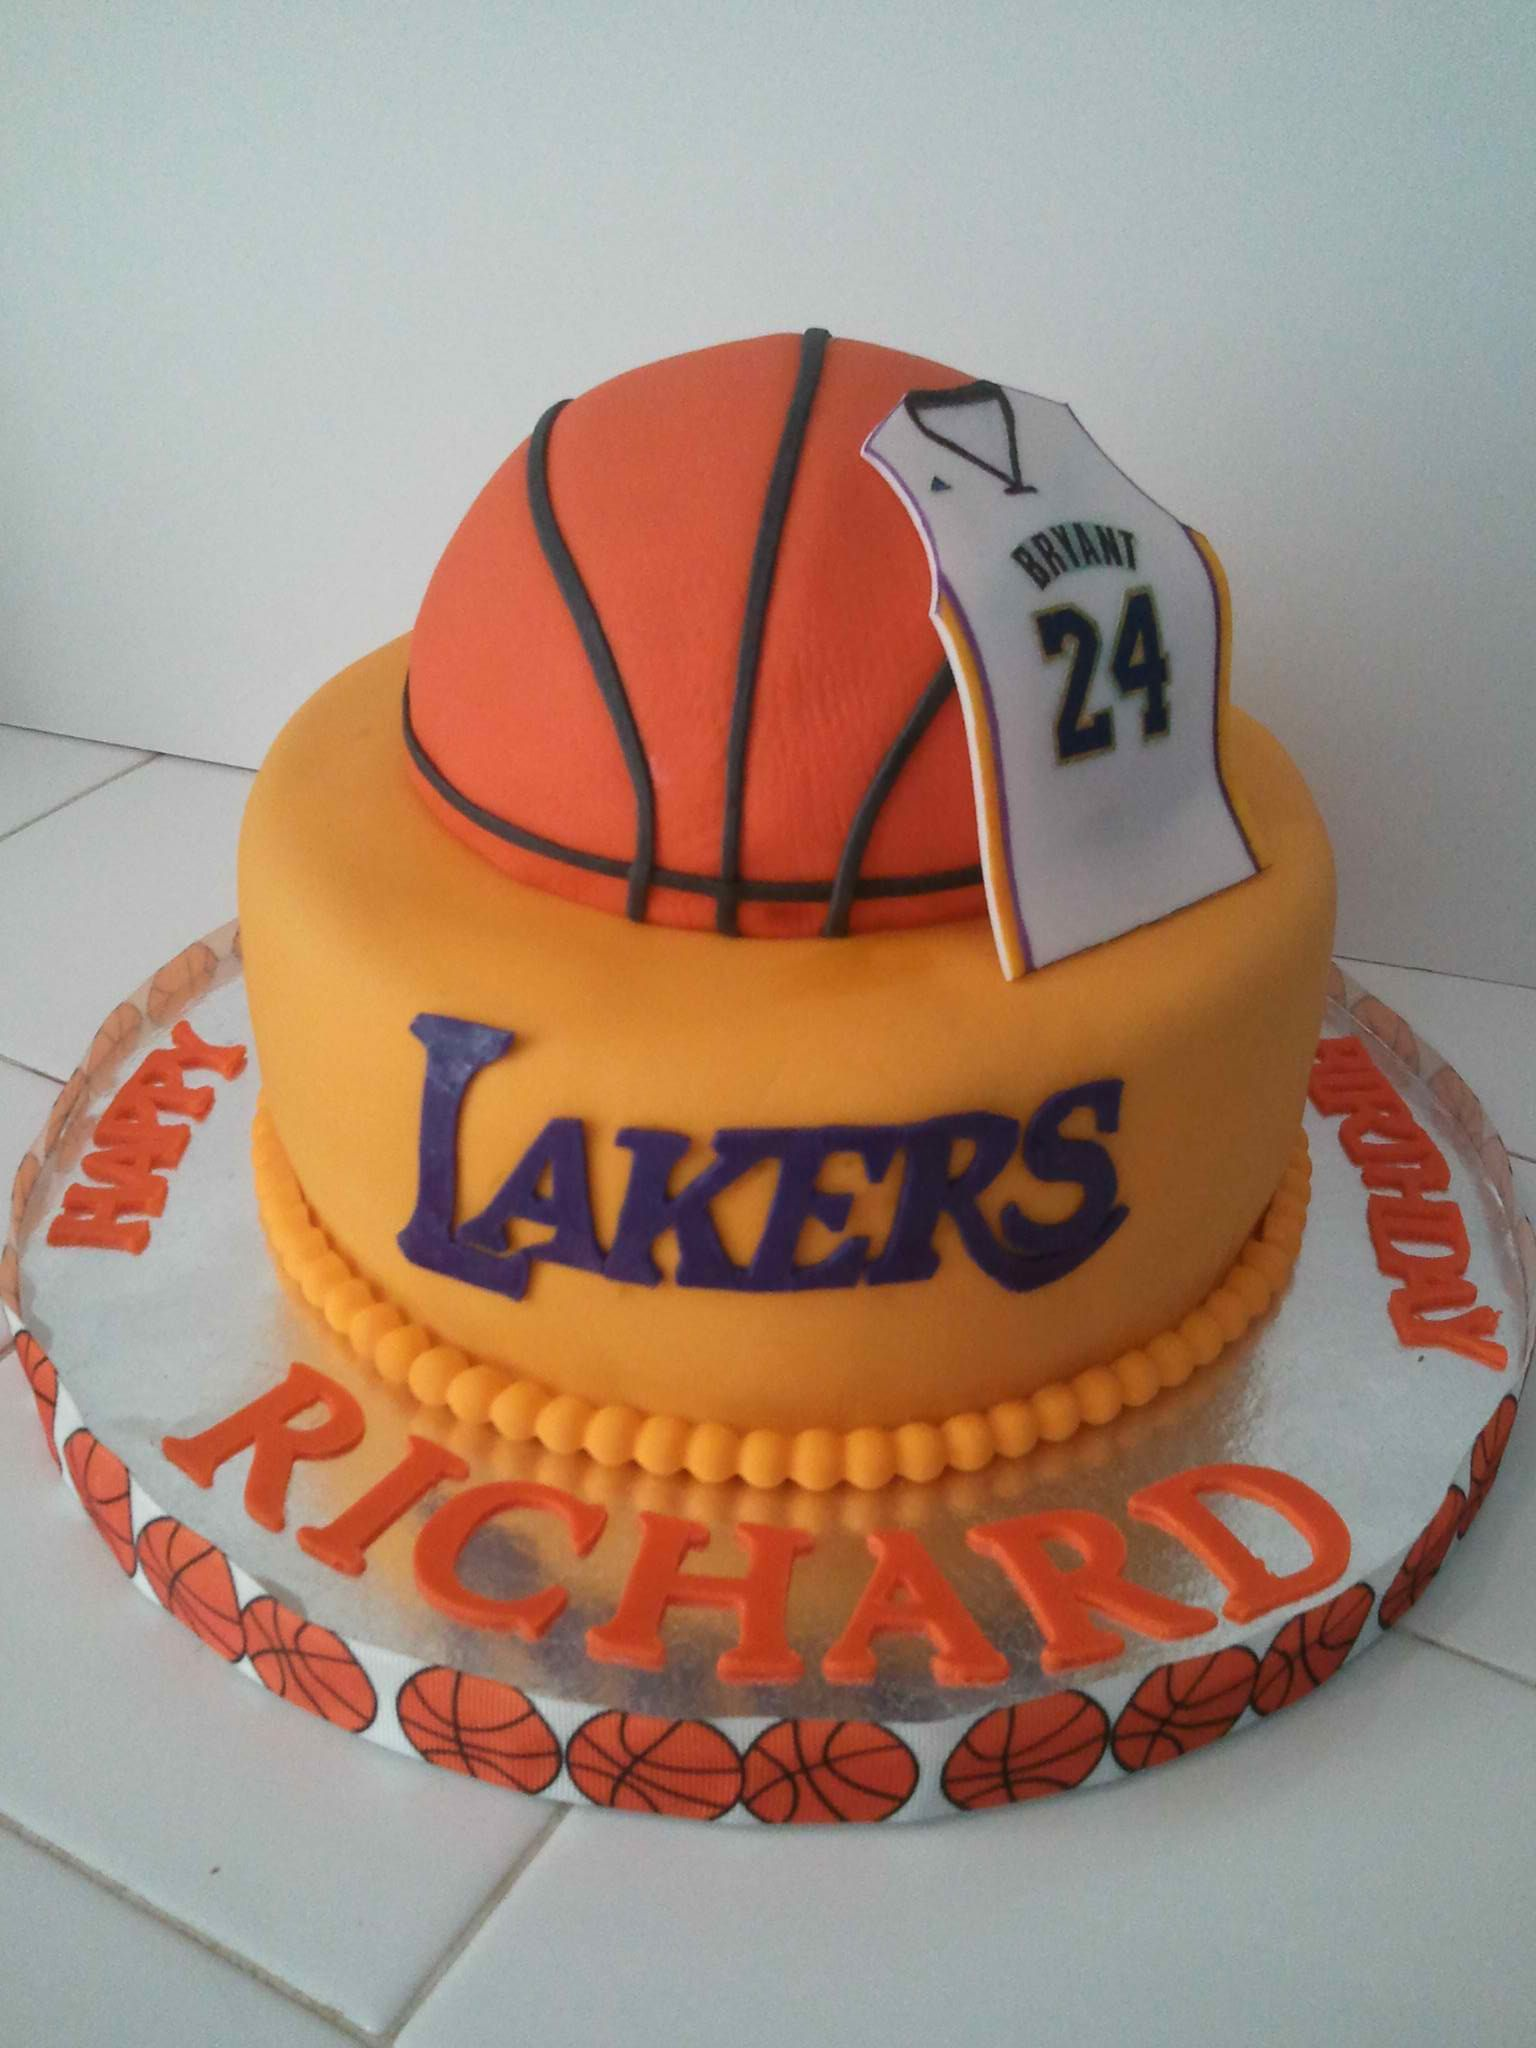 Stupendous Lakers Cake With Images Basketball Birthday Cake Basketball Funny Birthday Cards Online Unhofree Goldxyz